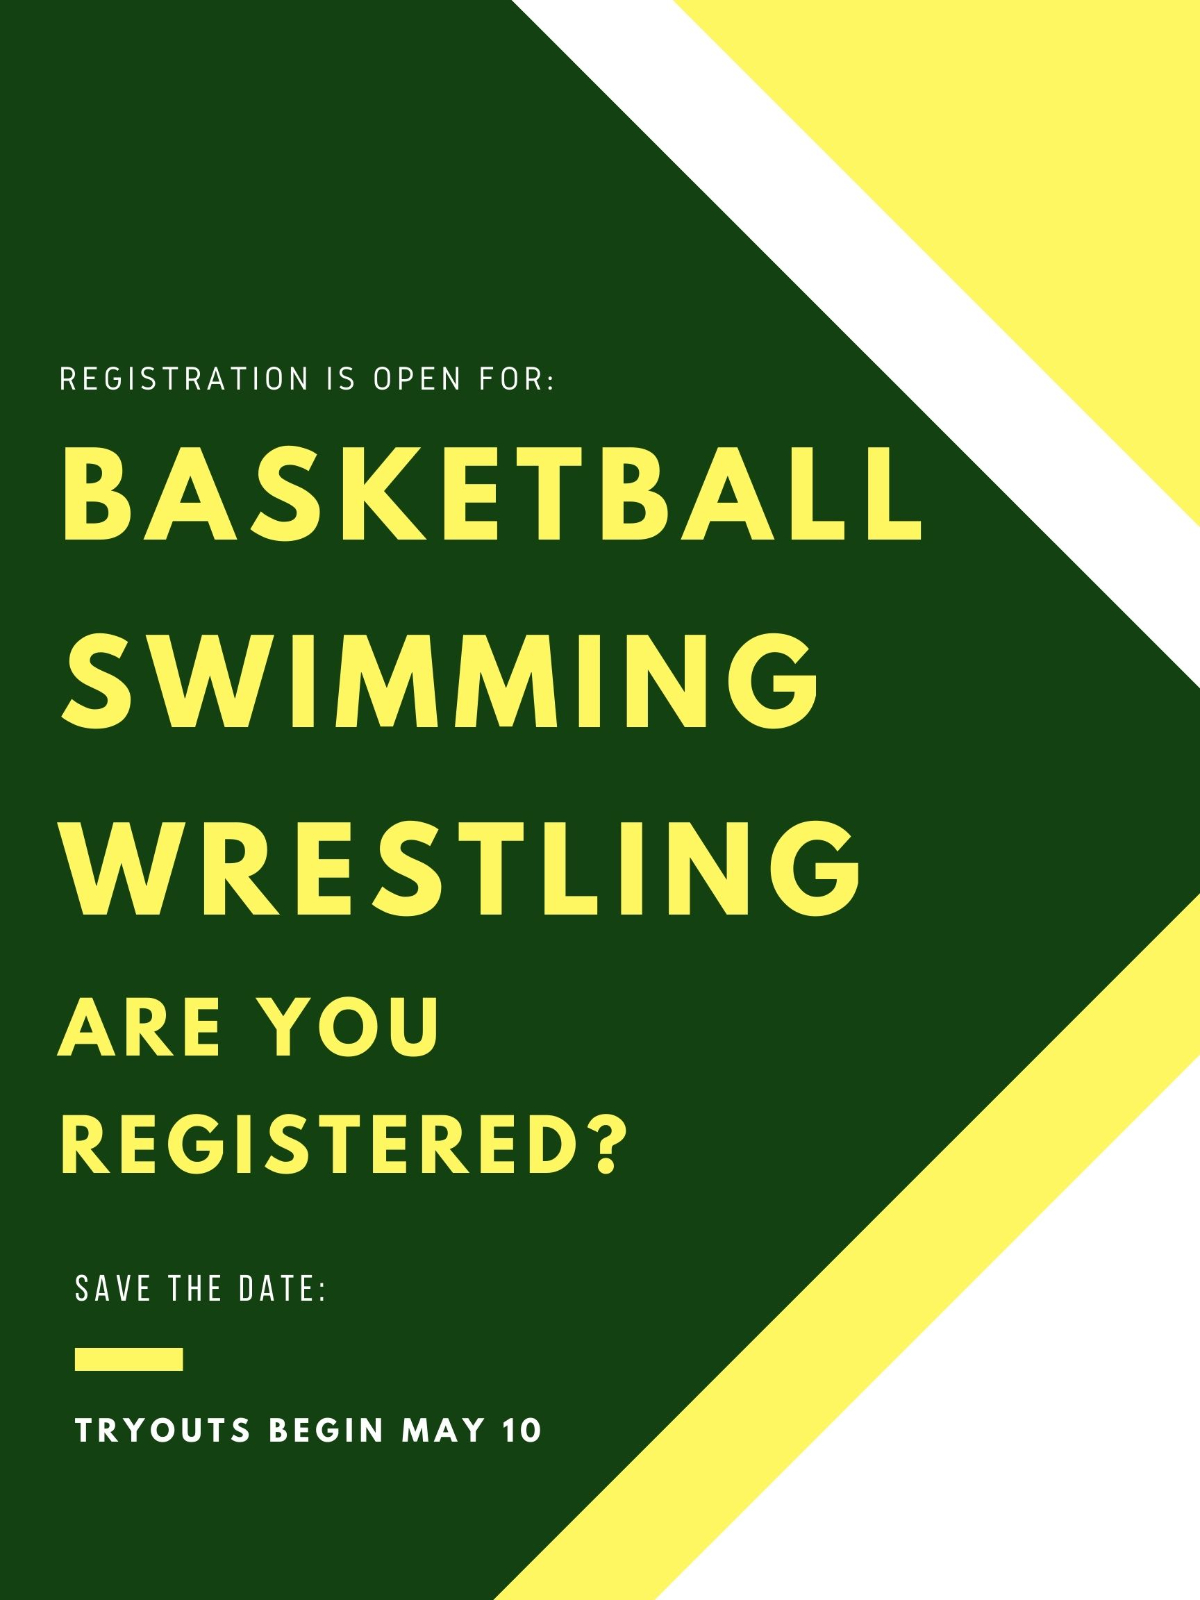 Winter Sports Registration Open